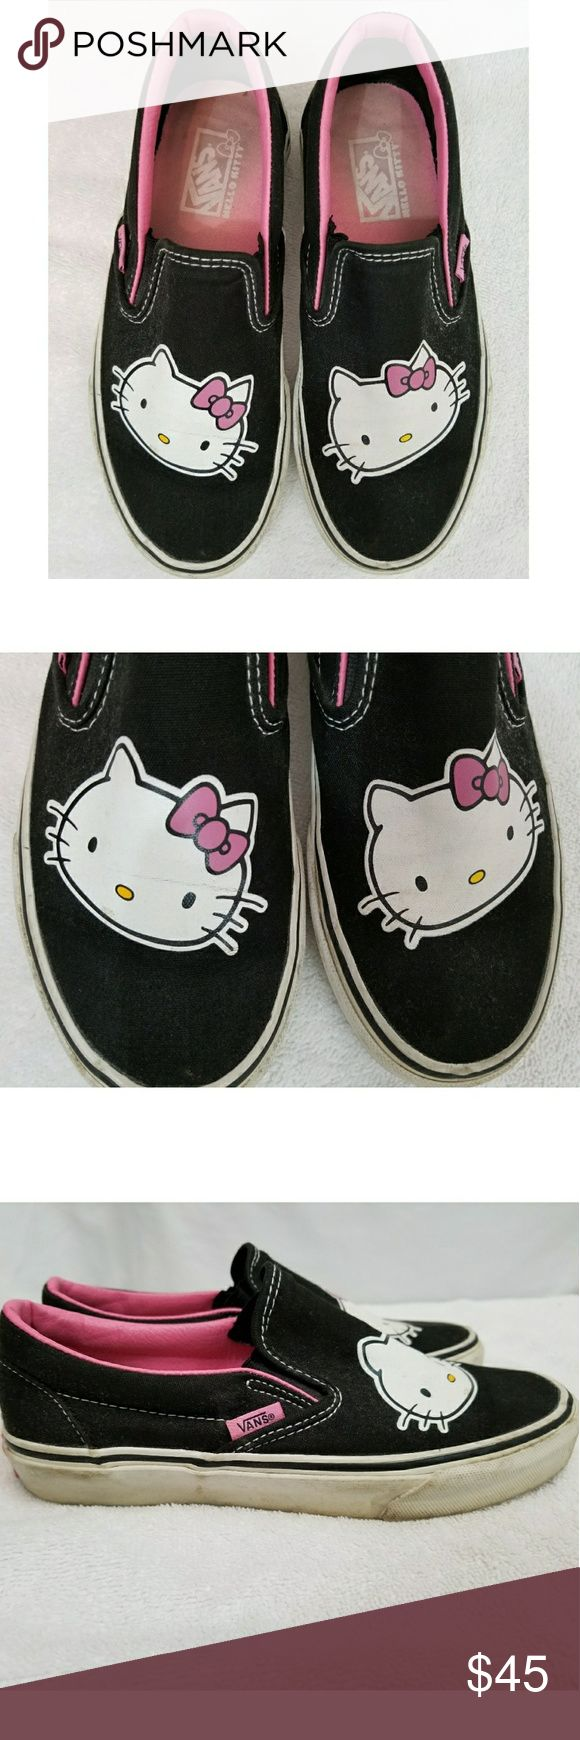 Hello Kitty Vans Pretty worn, but still have lots of life left. Vans Shoes Sneakers